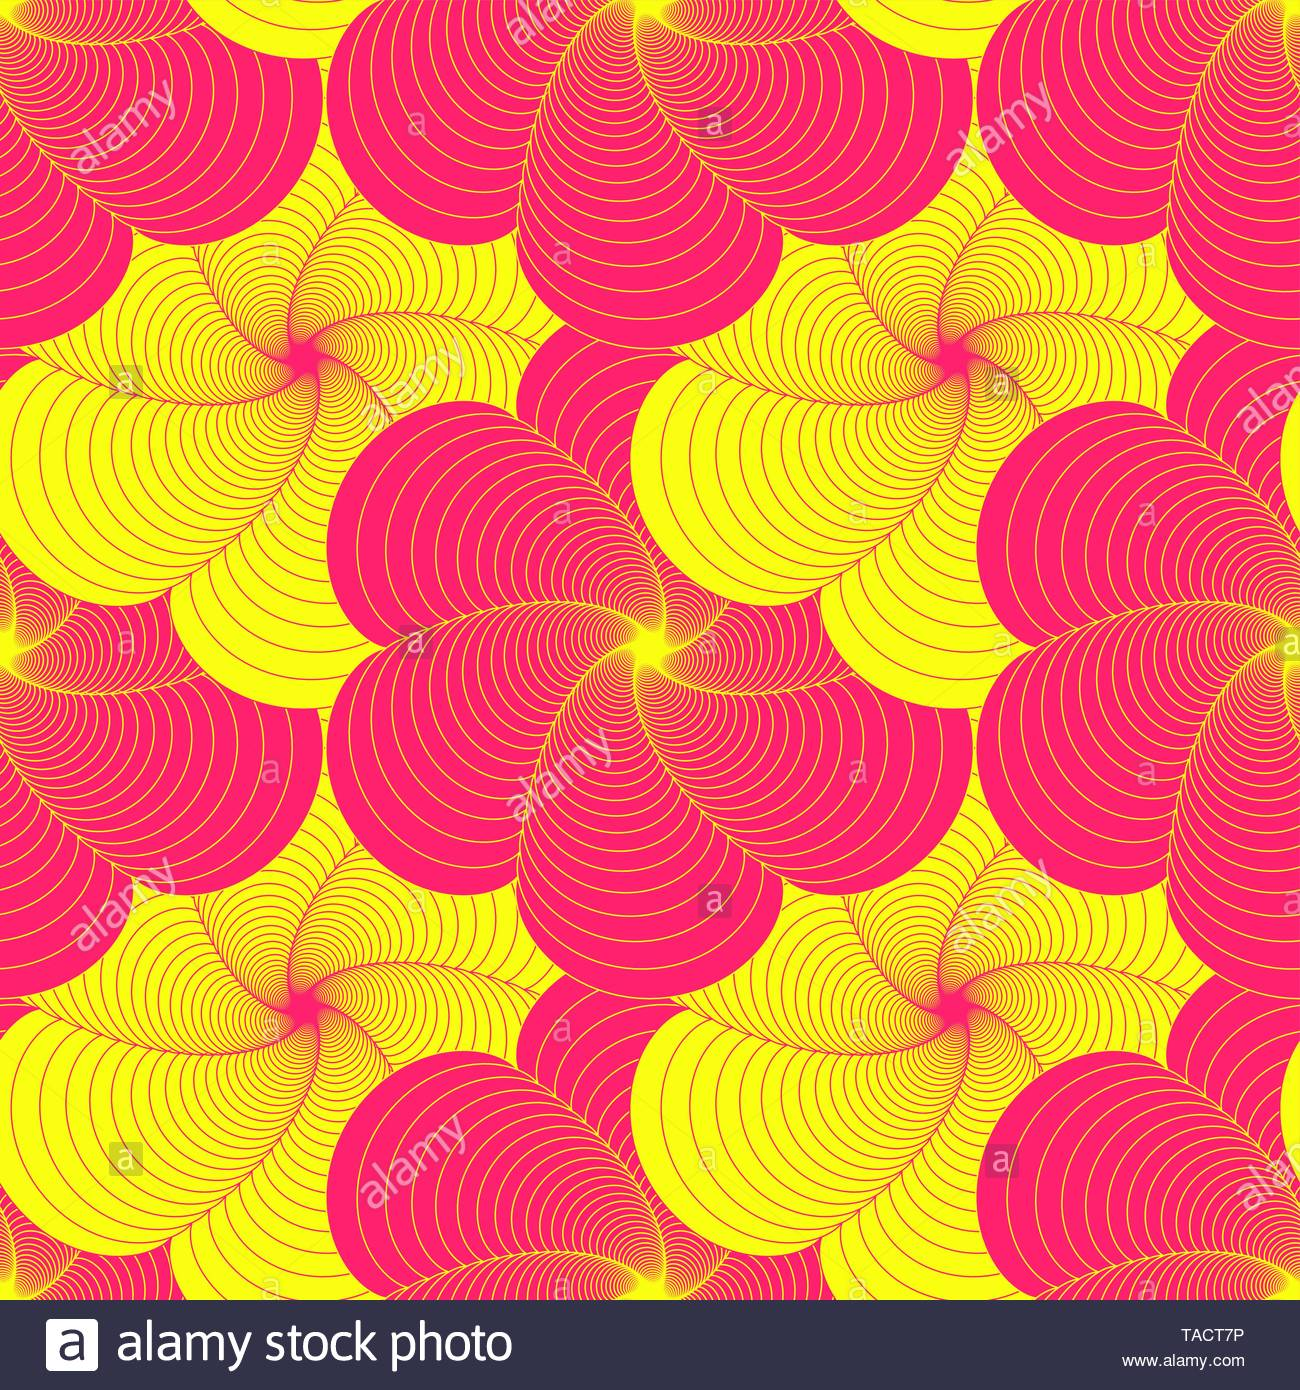 graphic wired flower field seamless tile in vivid pink yellow shades - Stock Image